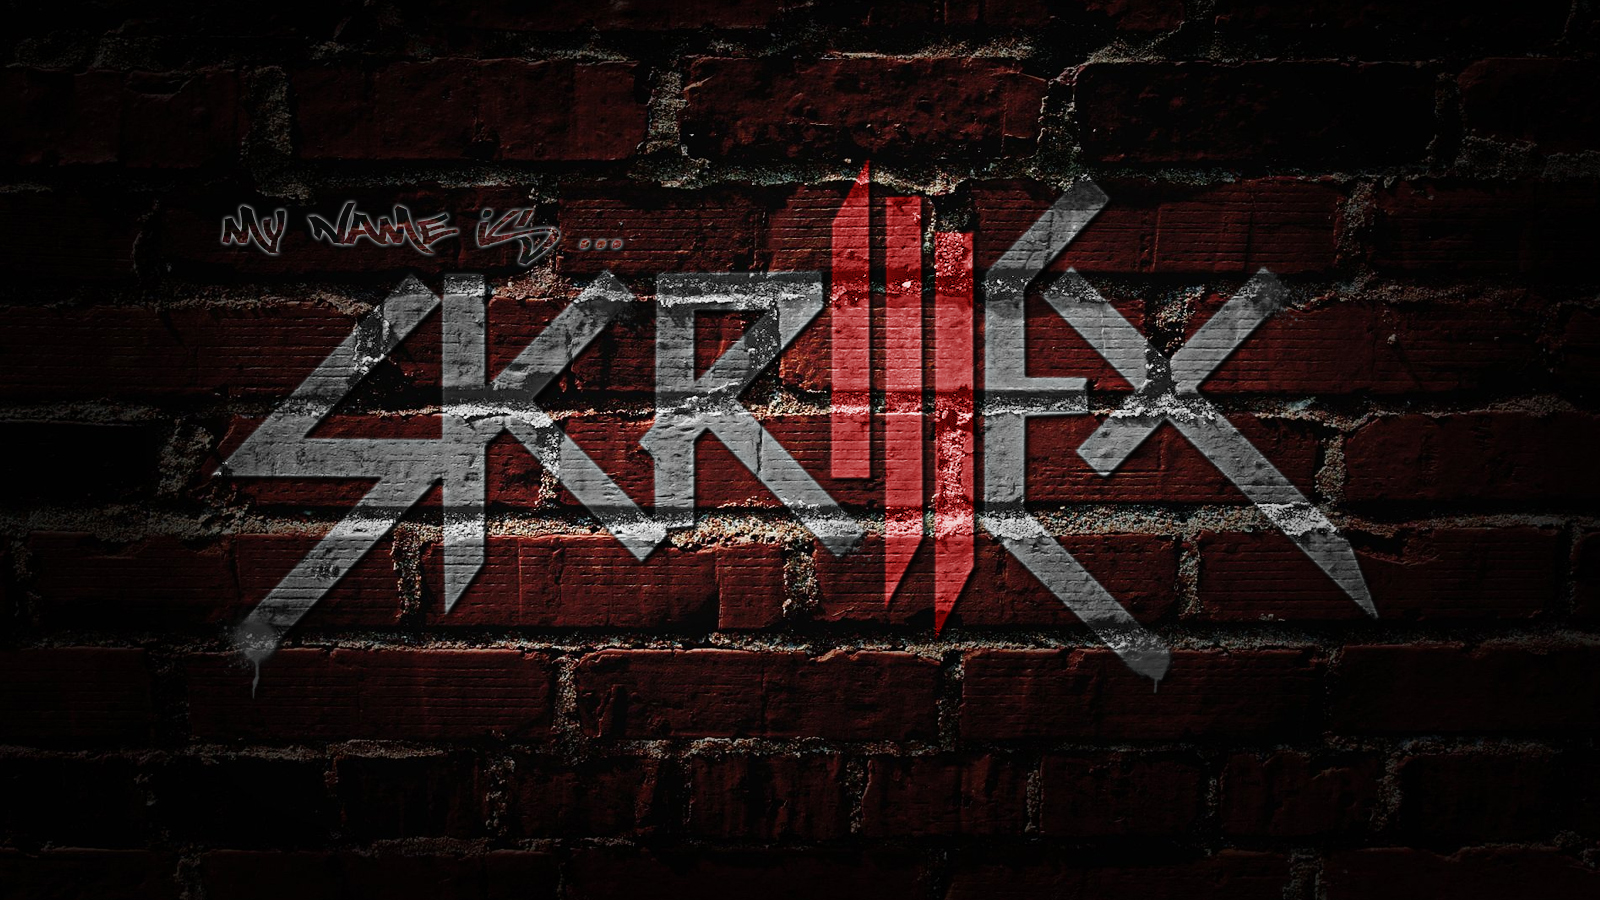 5760x3840 computer wallpaper for skrillex | 5760x3840 | 1625 kB by ...